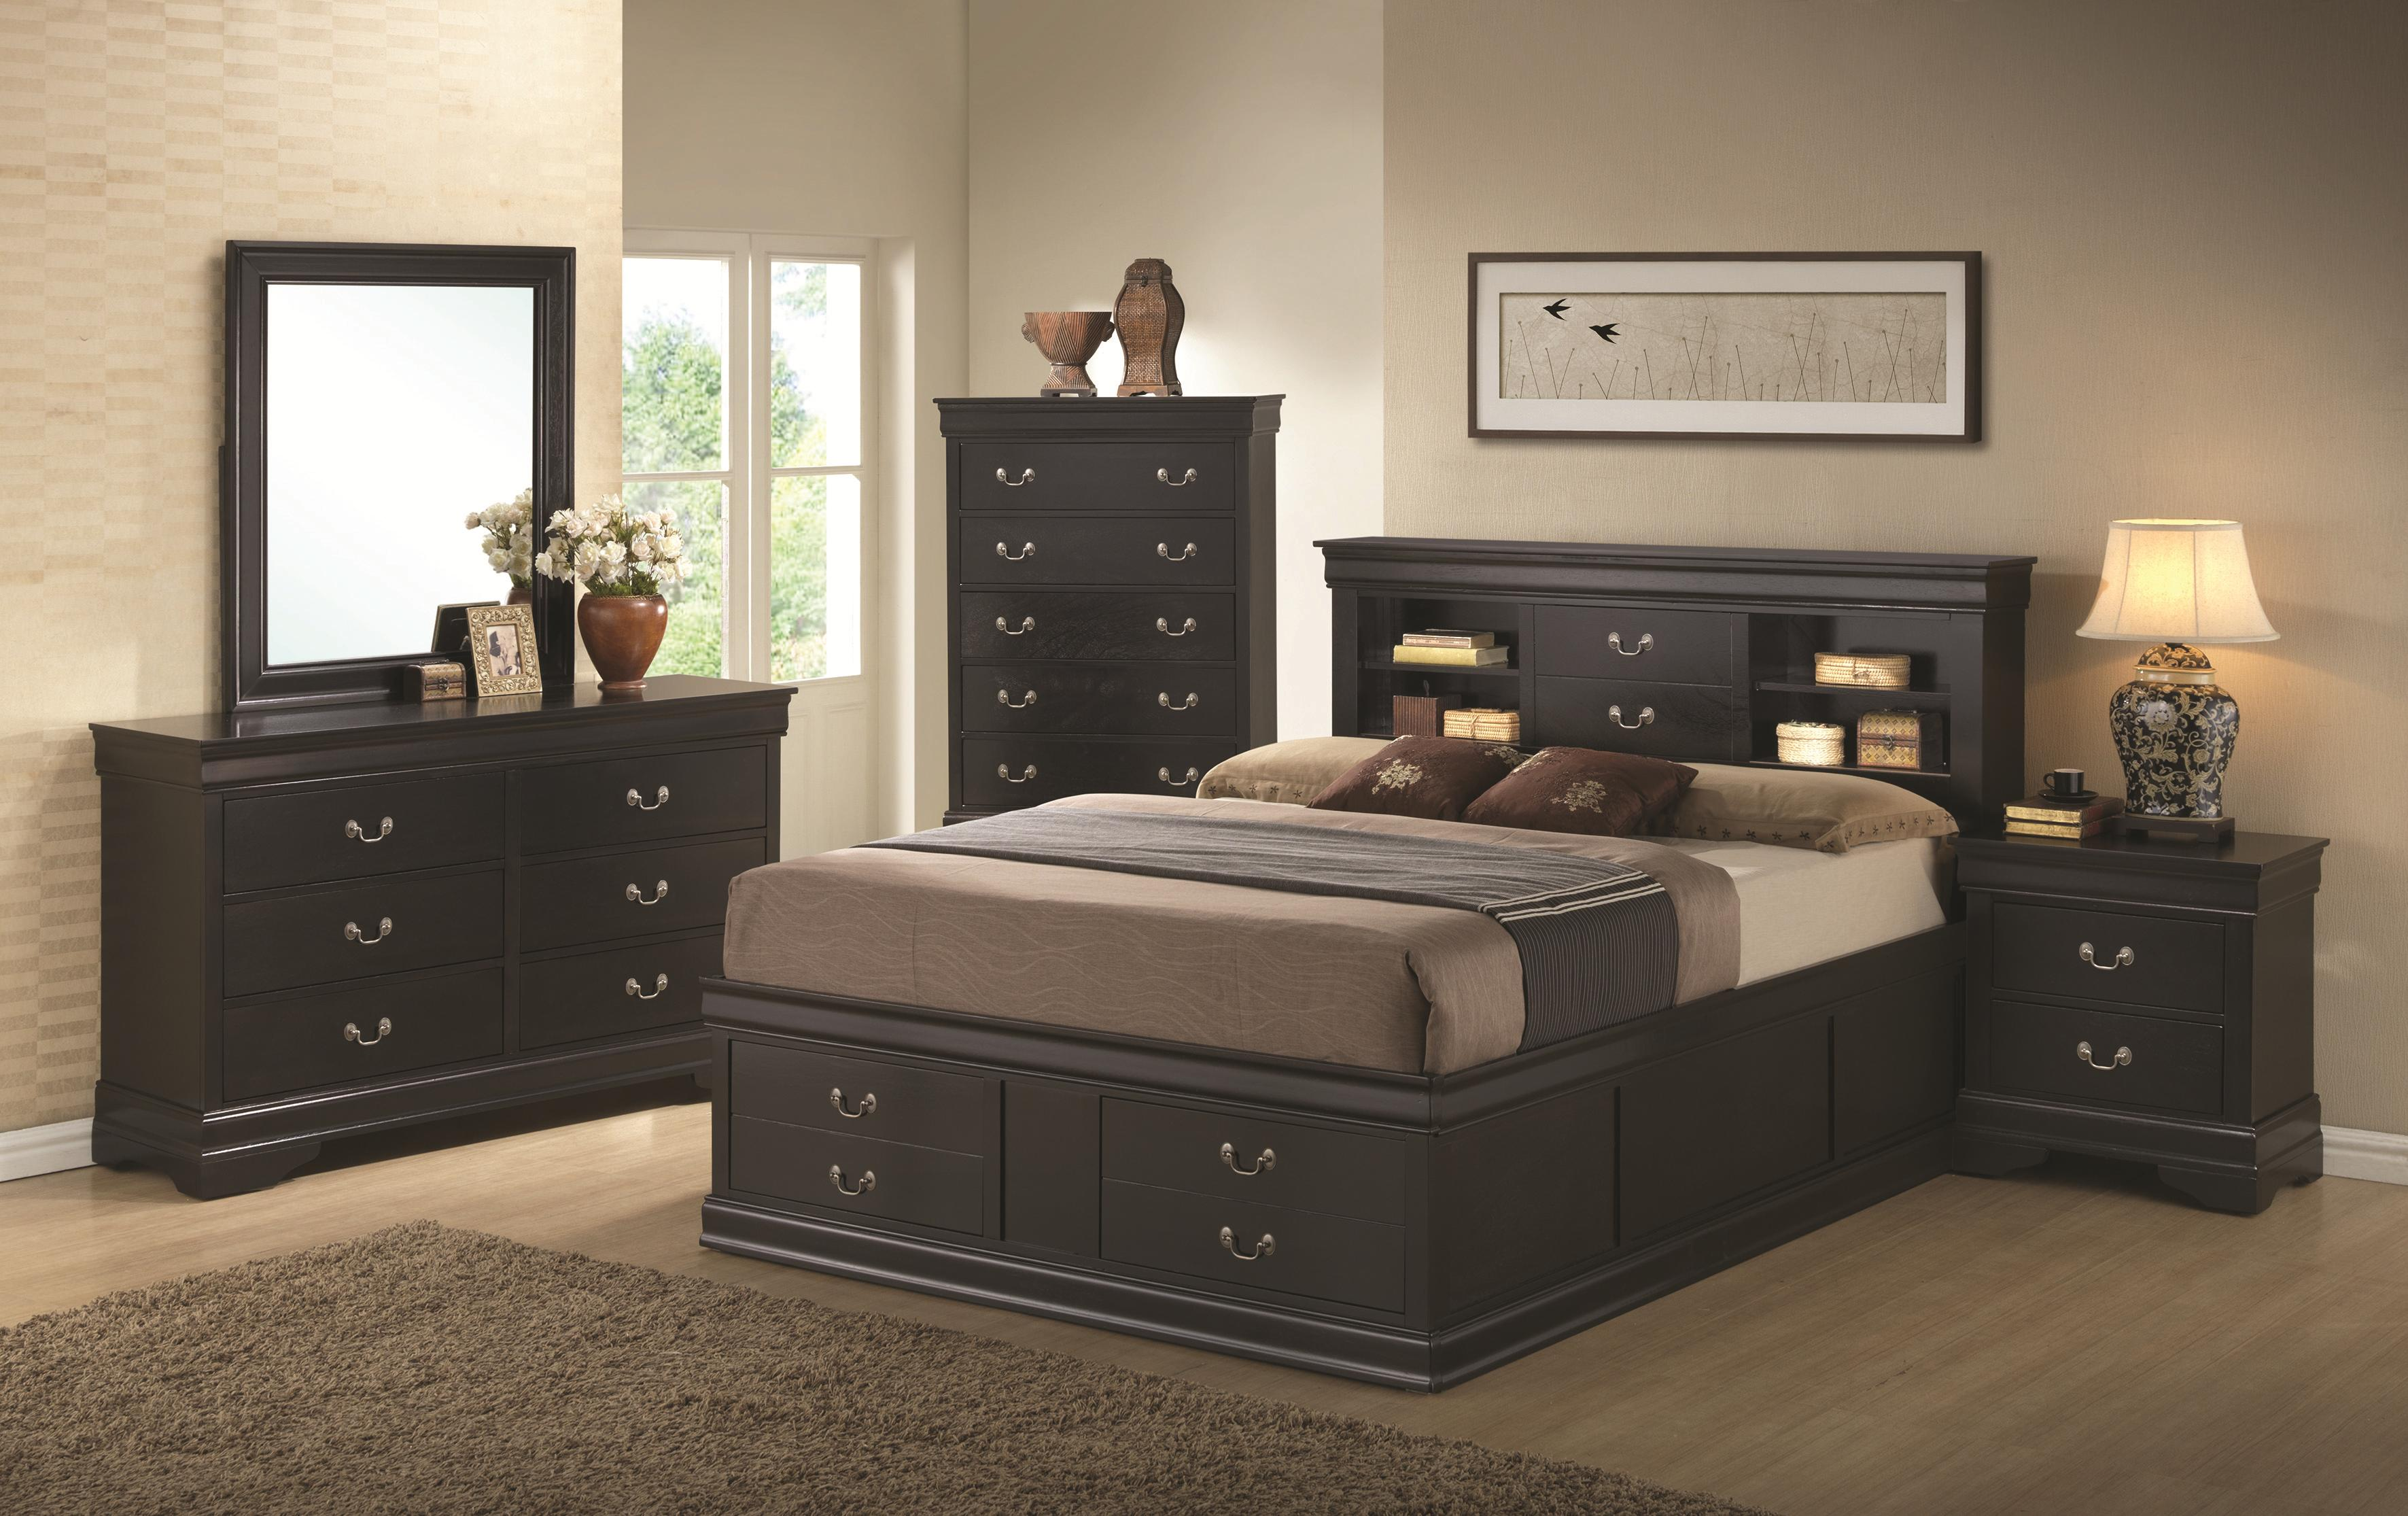 Quality   value   style   the best selection of furniture. Suncoast Furniture - Suncoast Furniture and Mattress Outlet